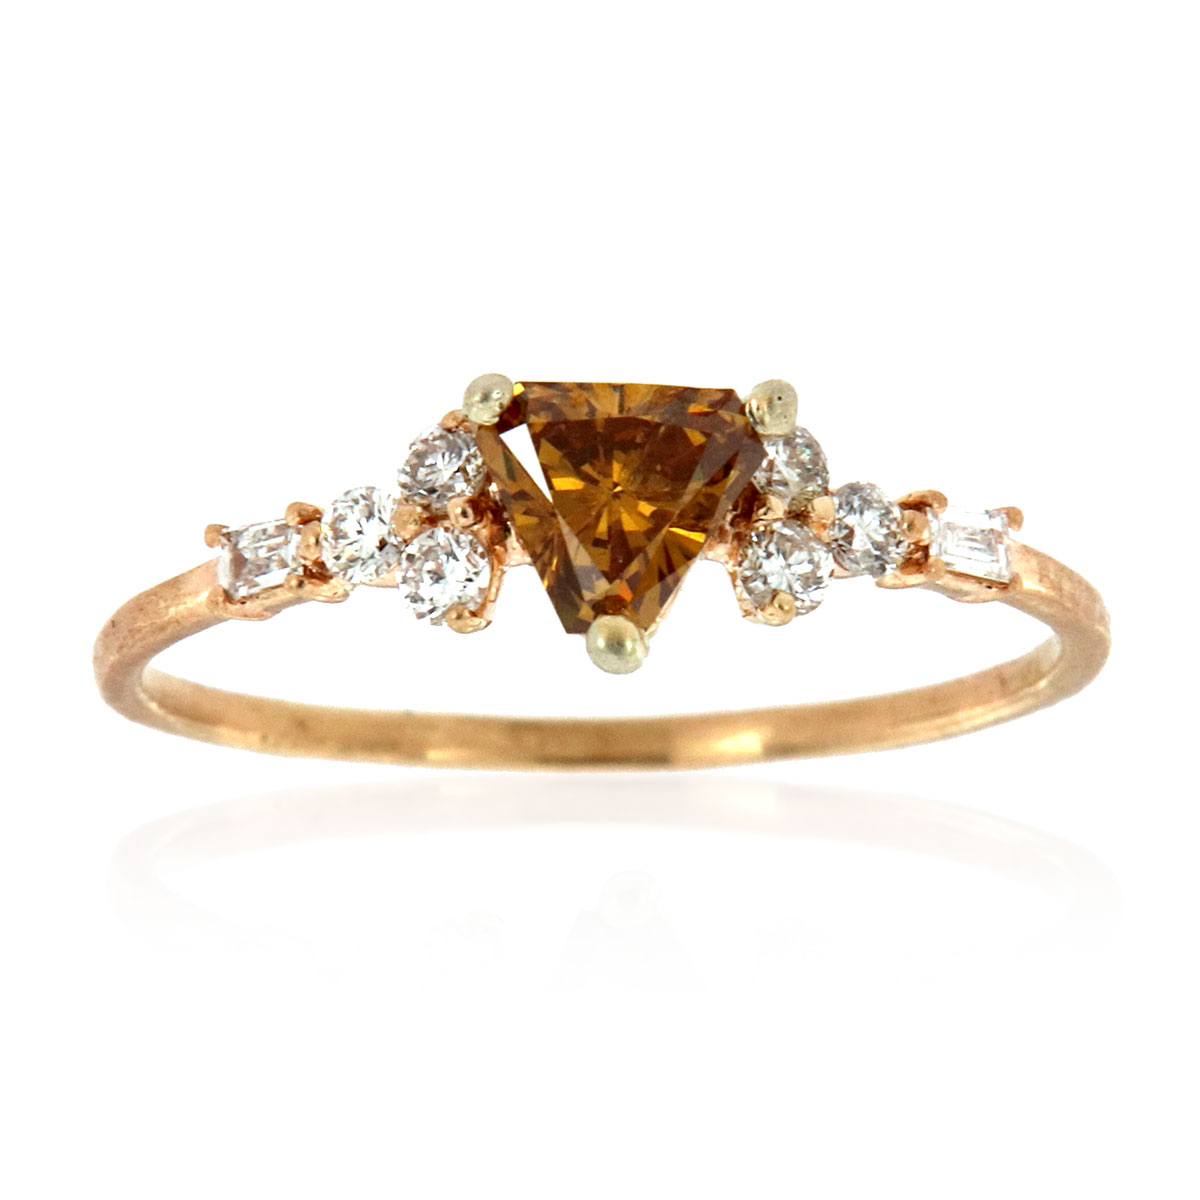 14K Yellow Gold Orna Rustic Design Champagne Color Diamond Ring ( Center-0.37 Carat)